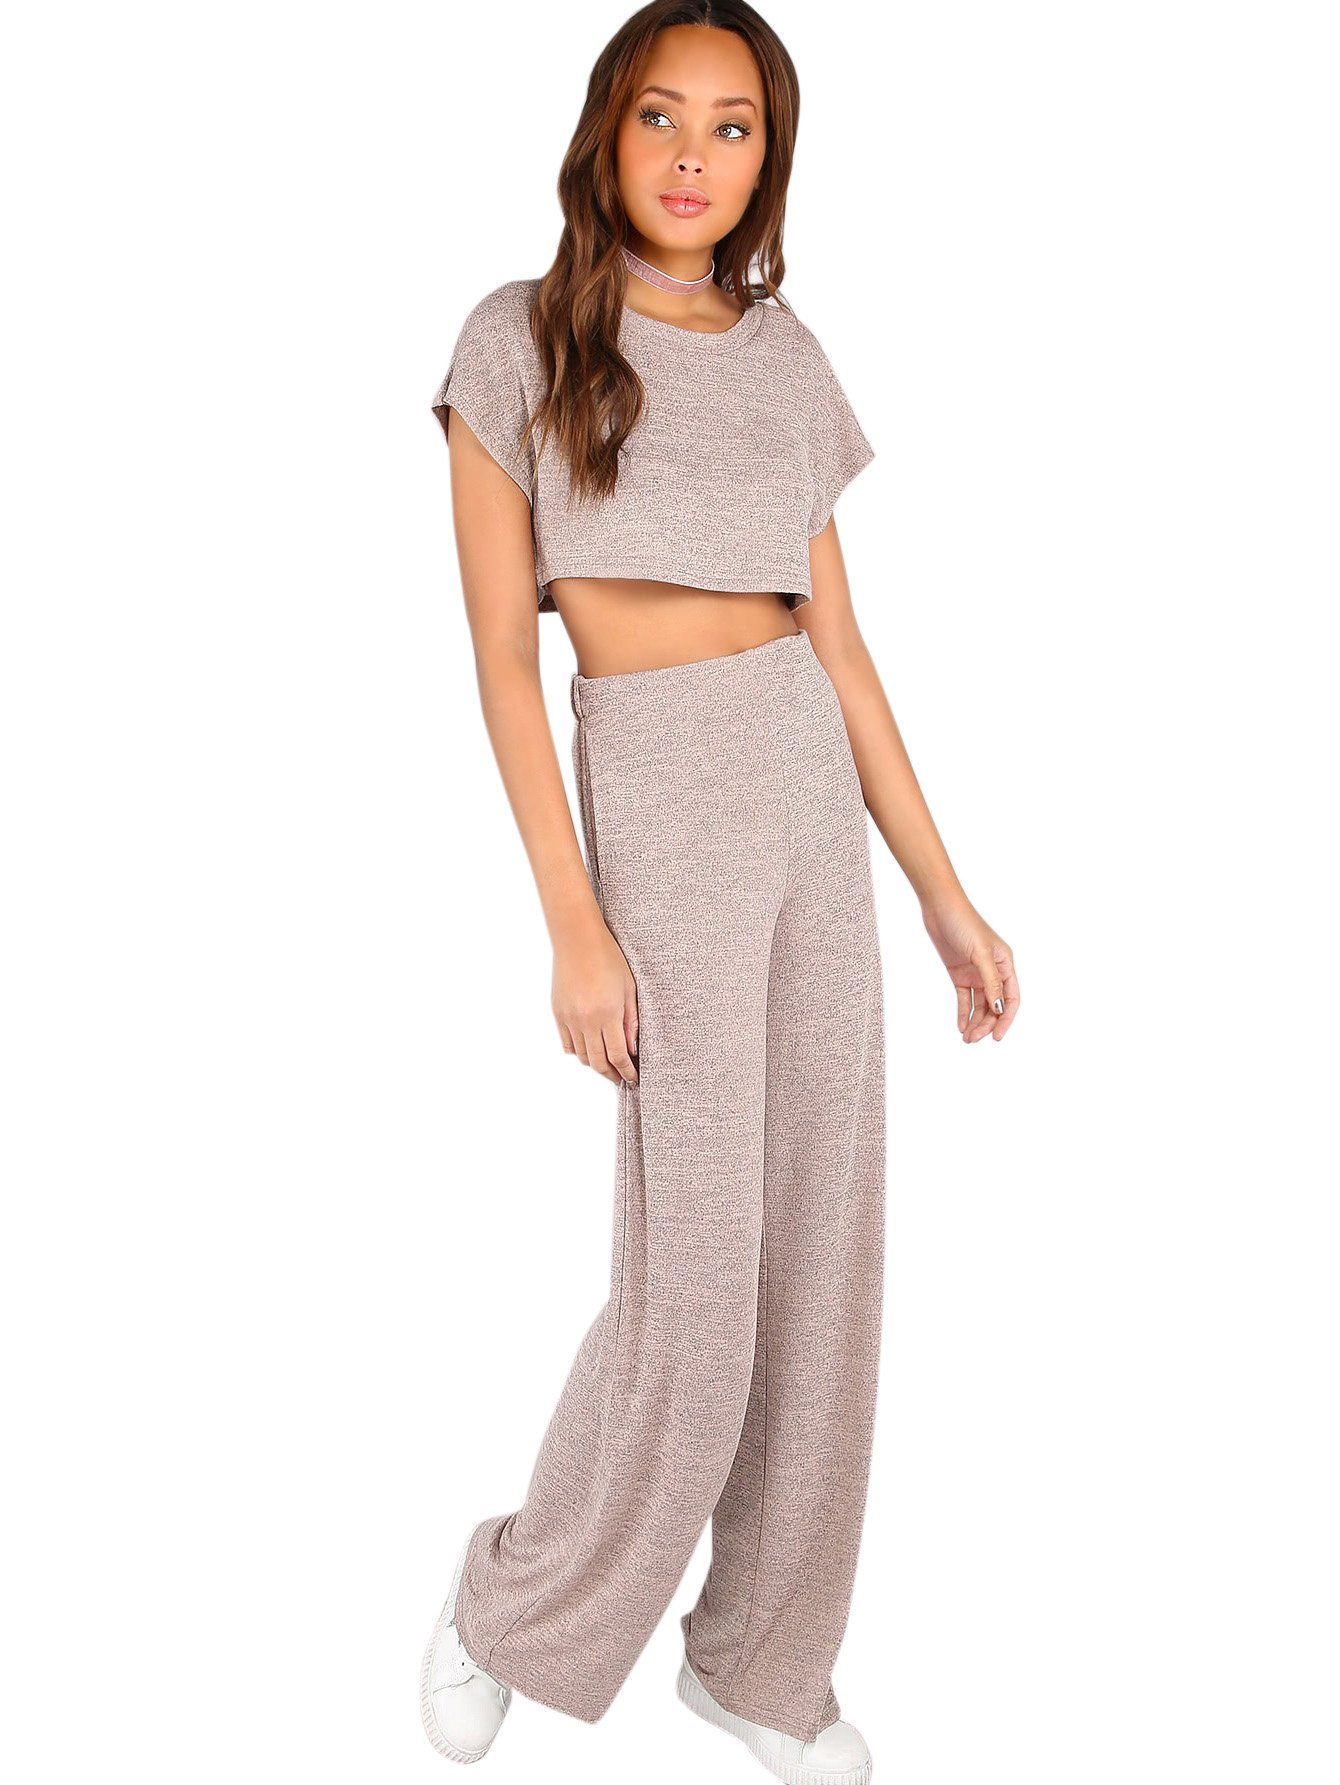 Verdusa Women's Sporty 2 Pieces Sets Loose Crop Top and Wide Leg Pants Blush L by Verdusa (Image #4)